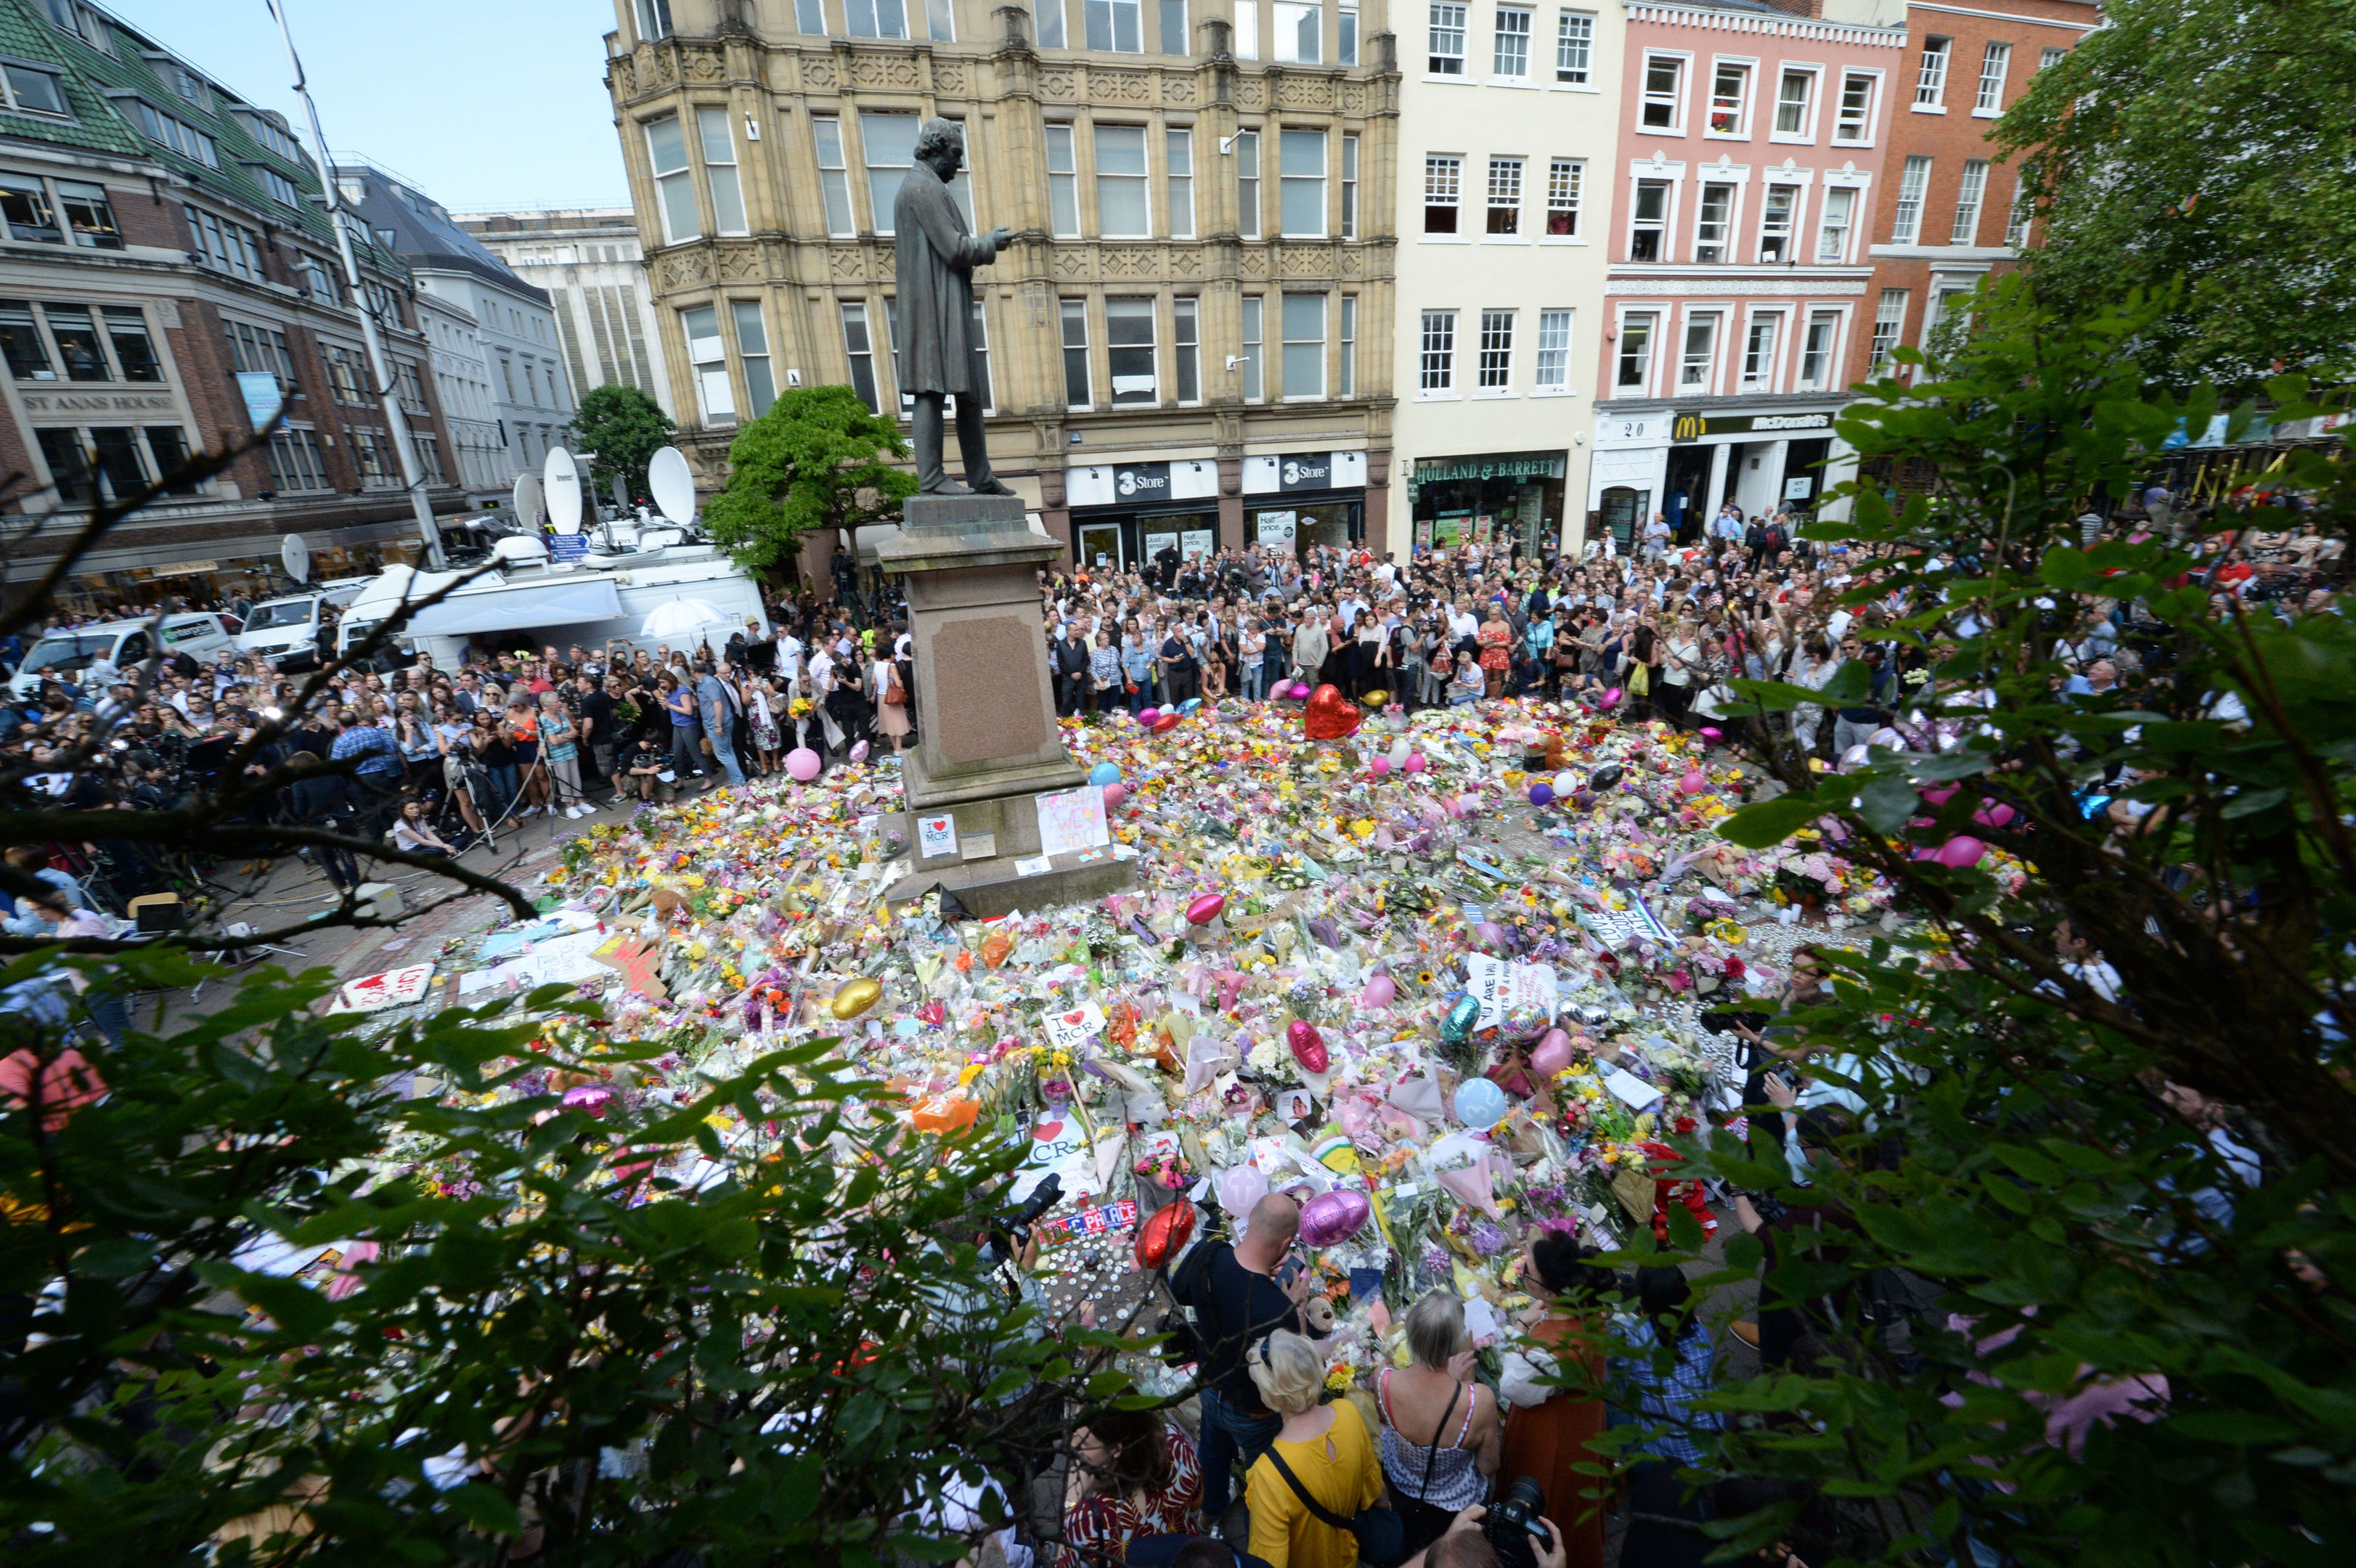 Crowds gather to pay their respects at the floral tributes in St Ann's Square, Manchester